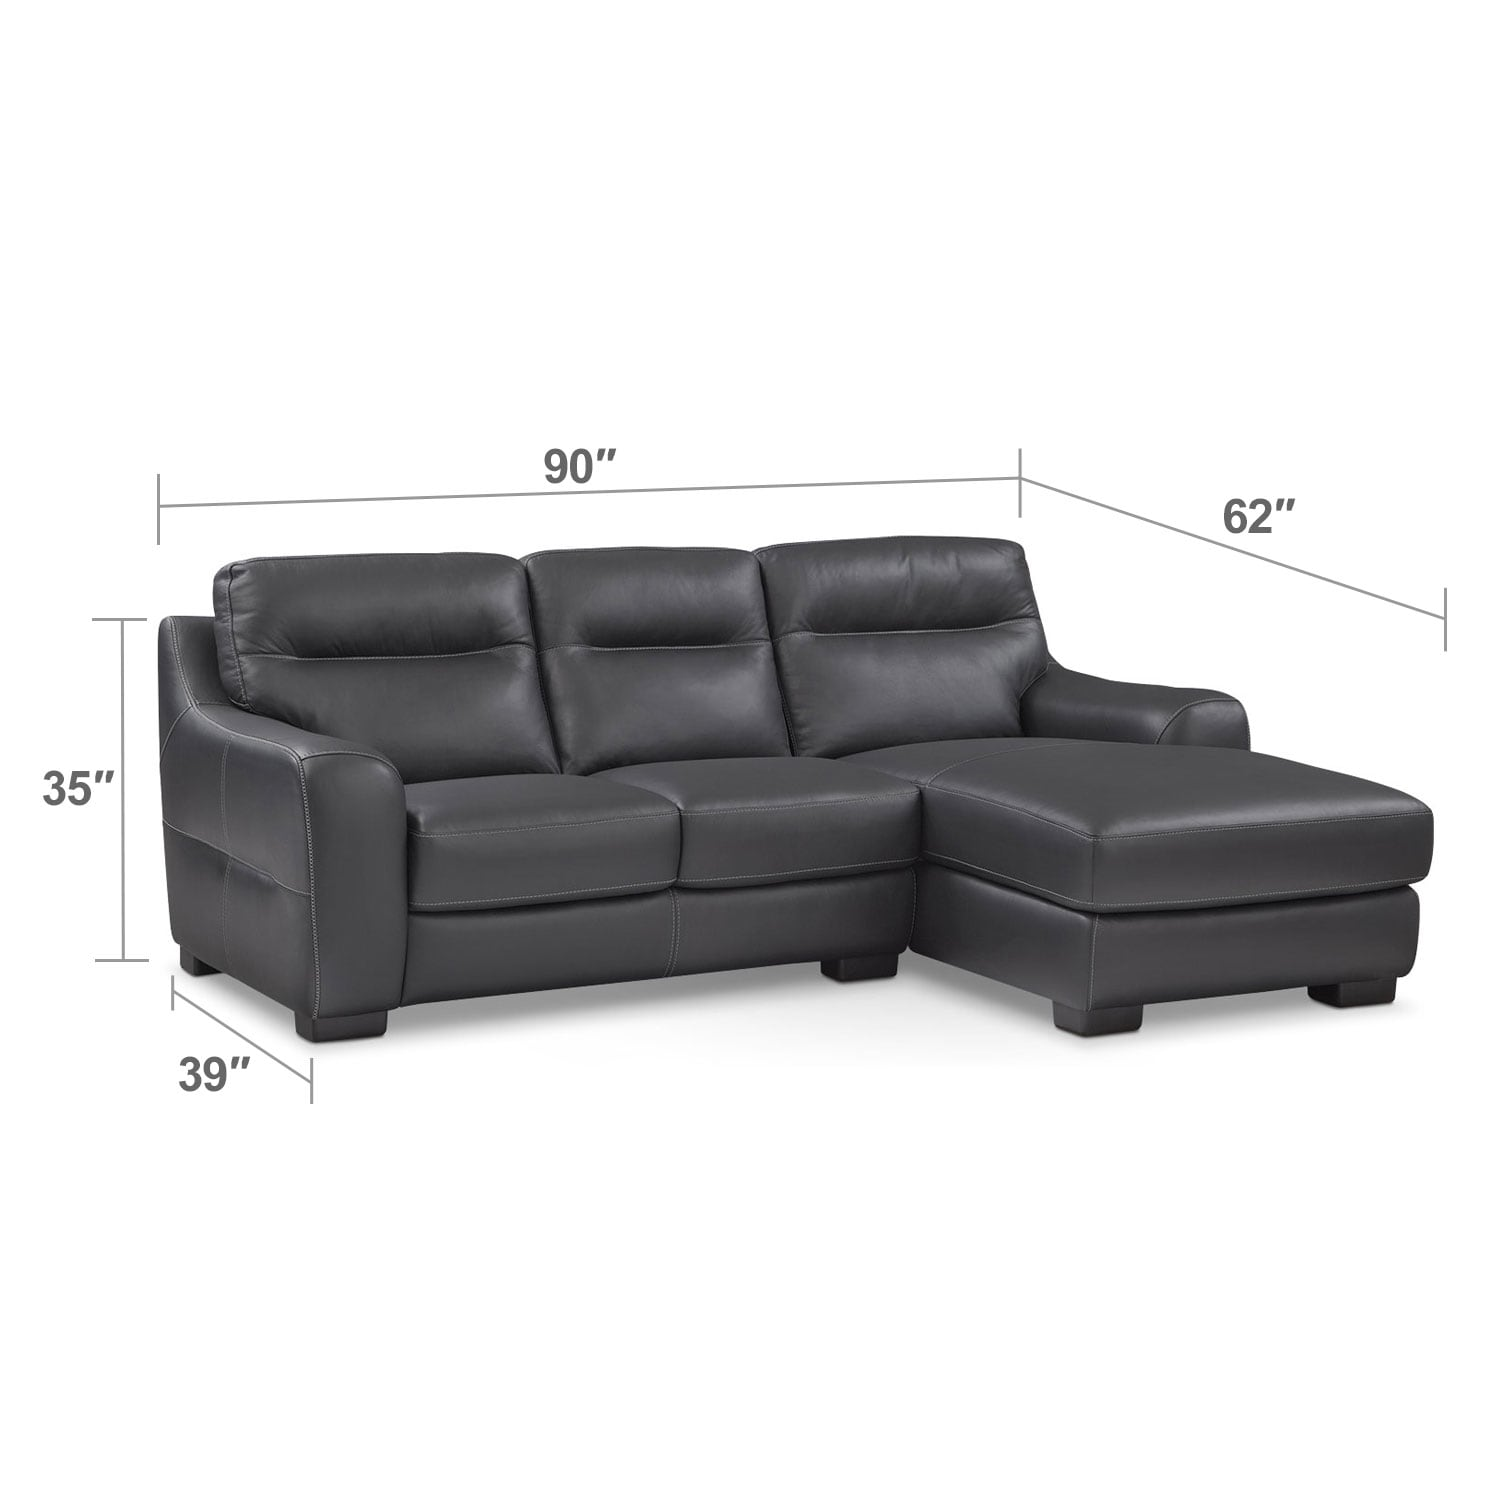 Living Room Furniture - Rocco 2-Piece Sectional with Right-Facing Chaise - Black